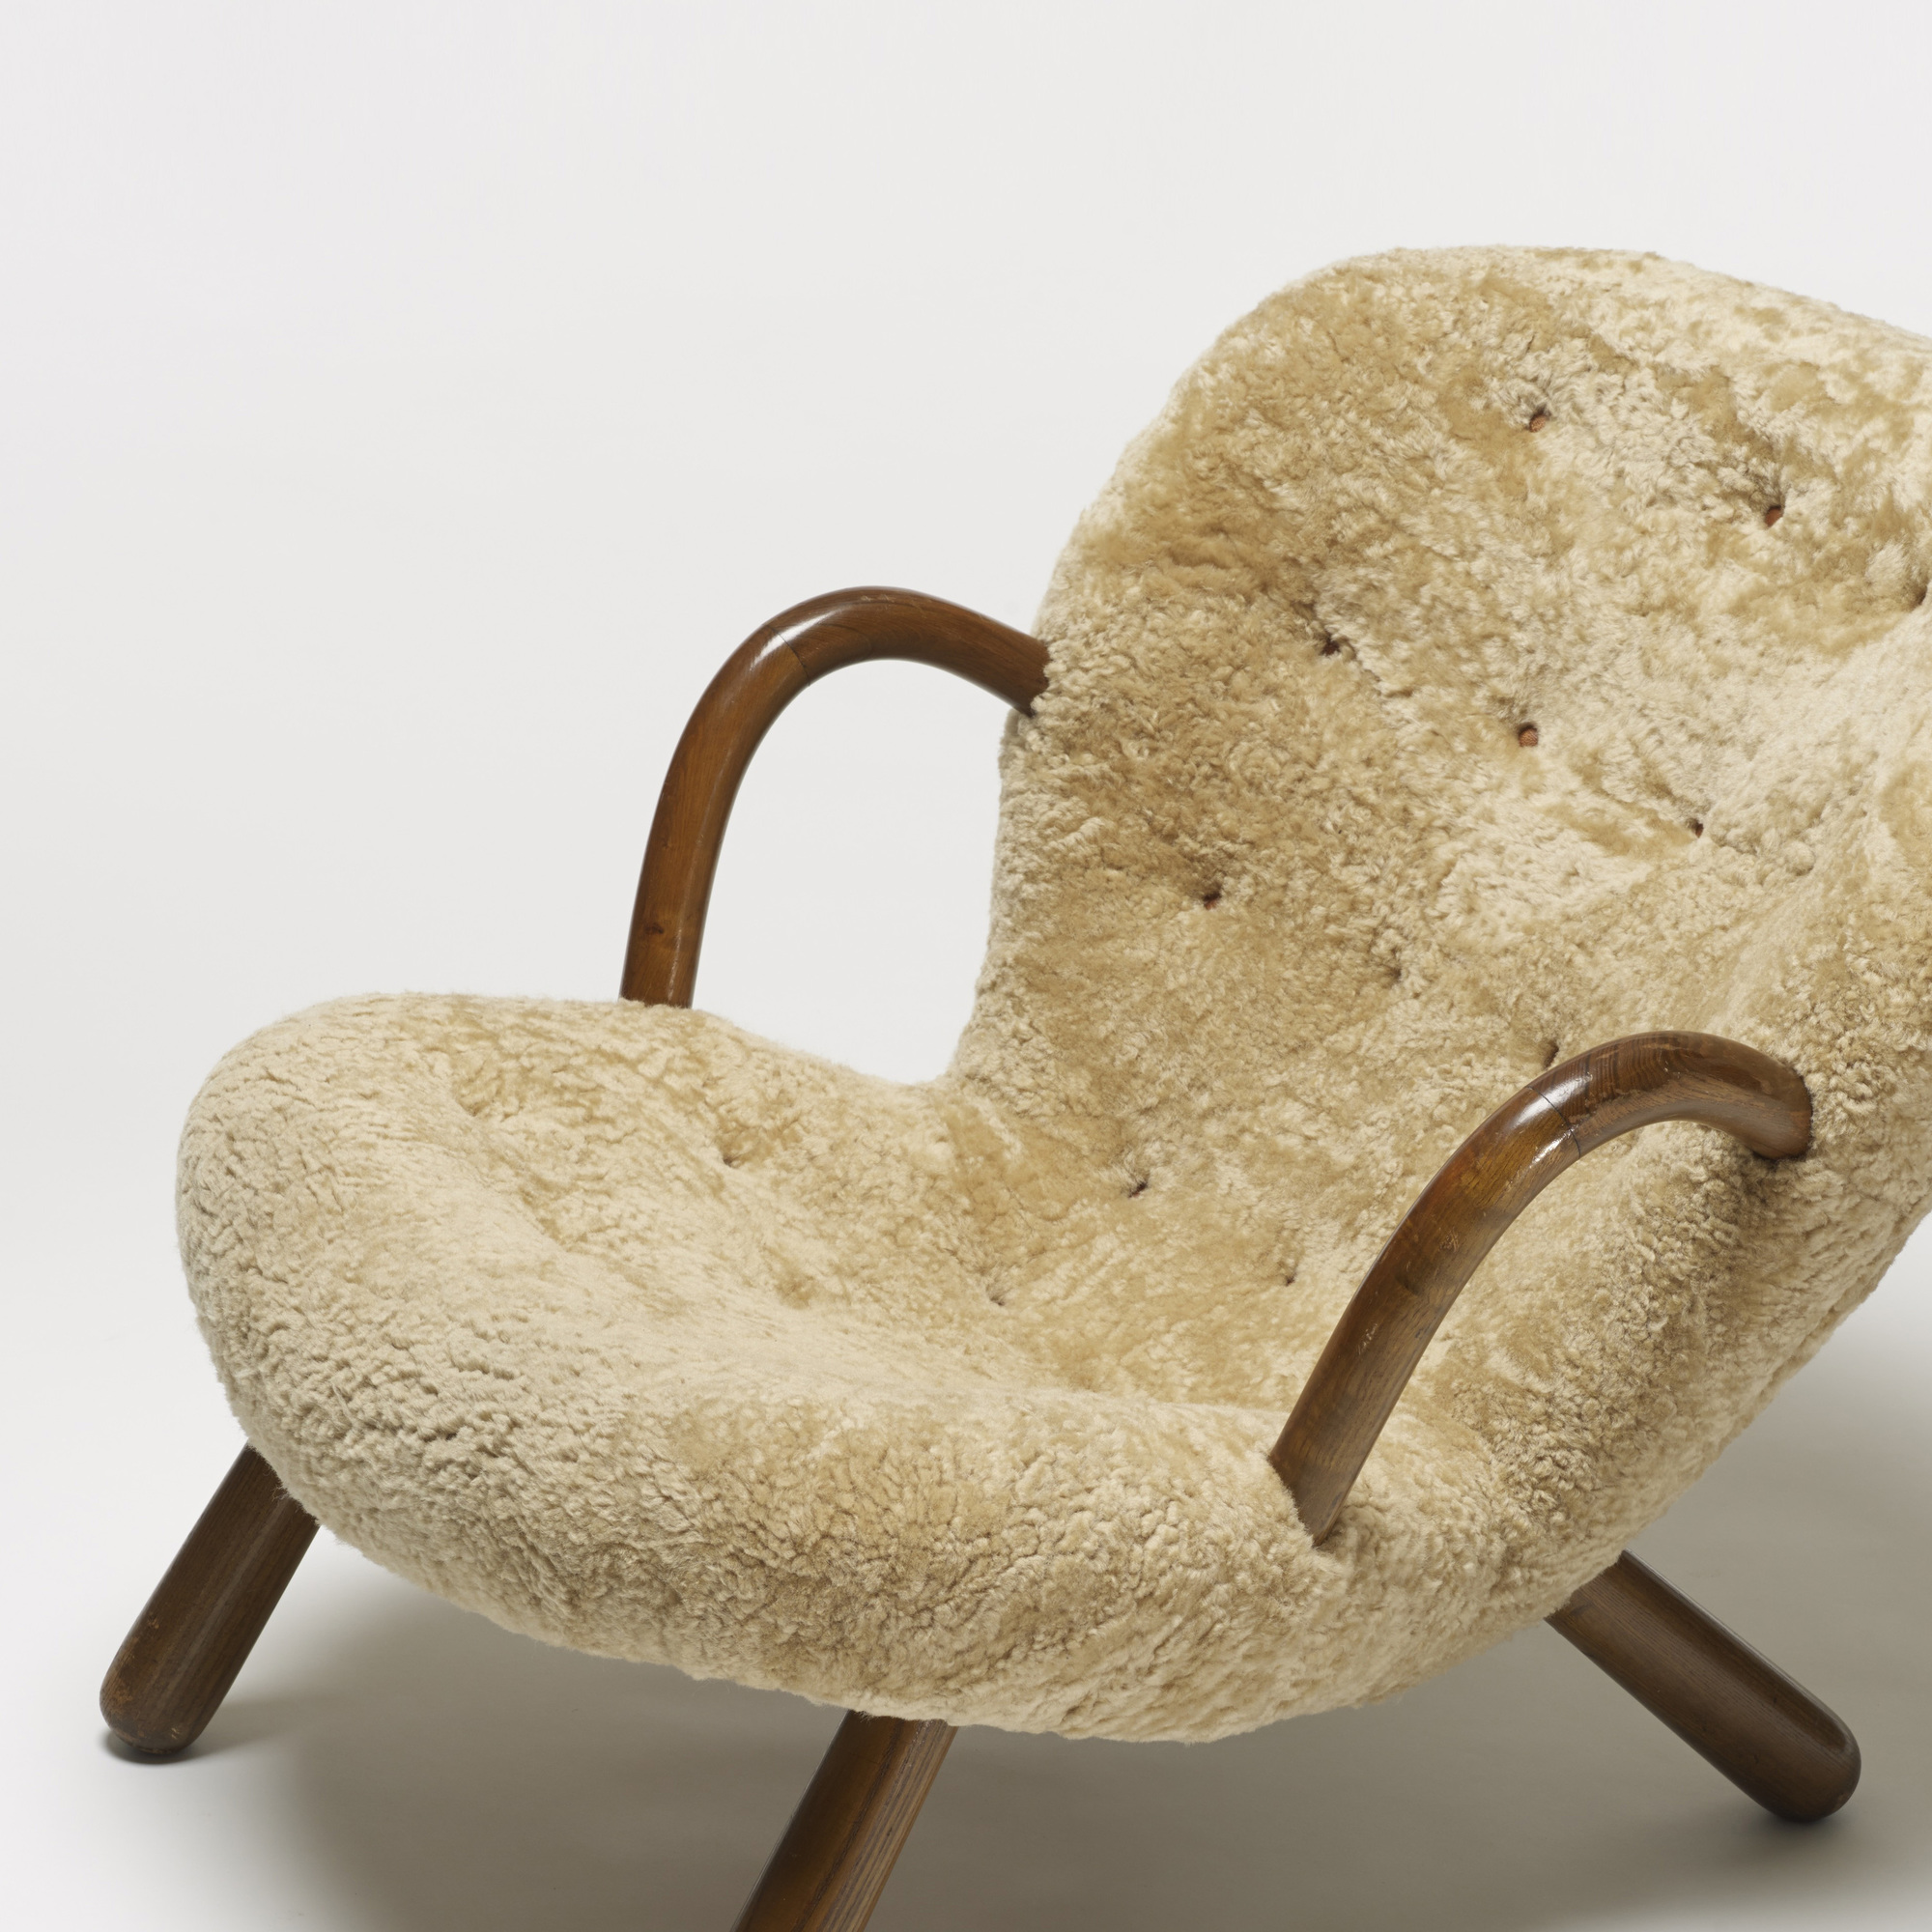 375: Philip Arctander / lounge chair (2 of 2)